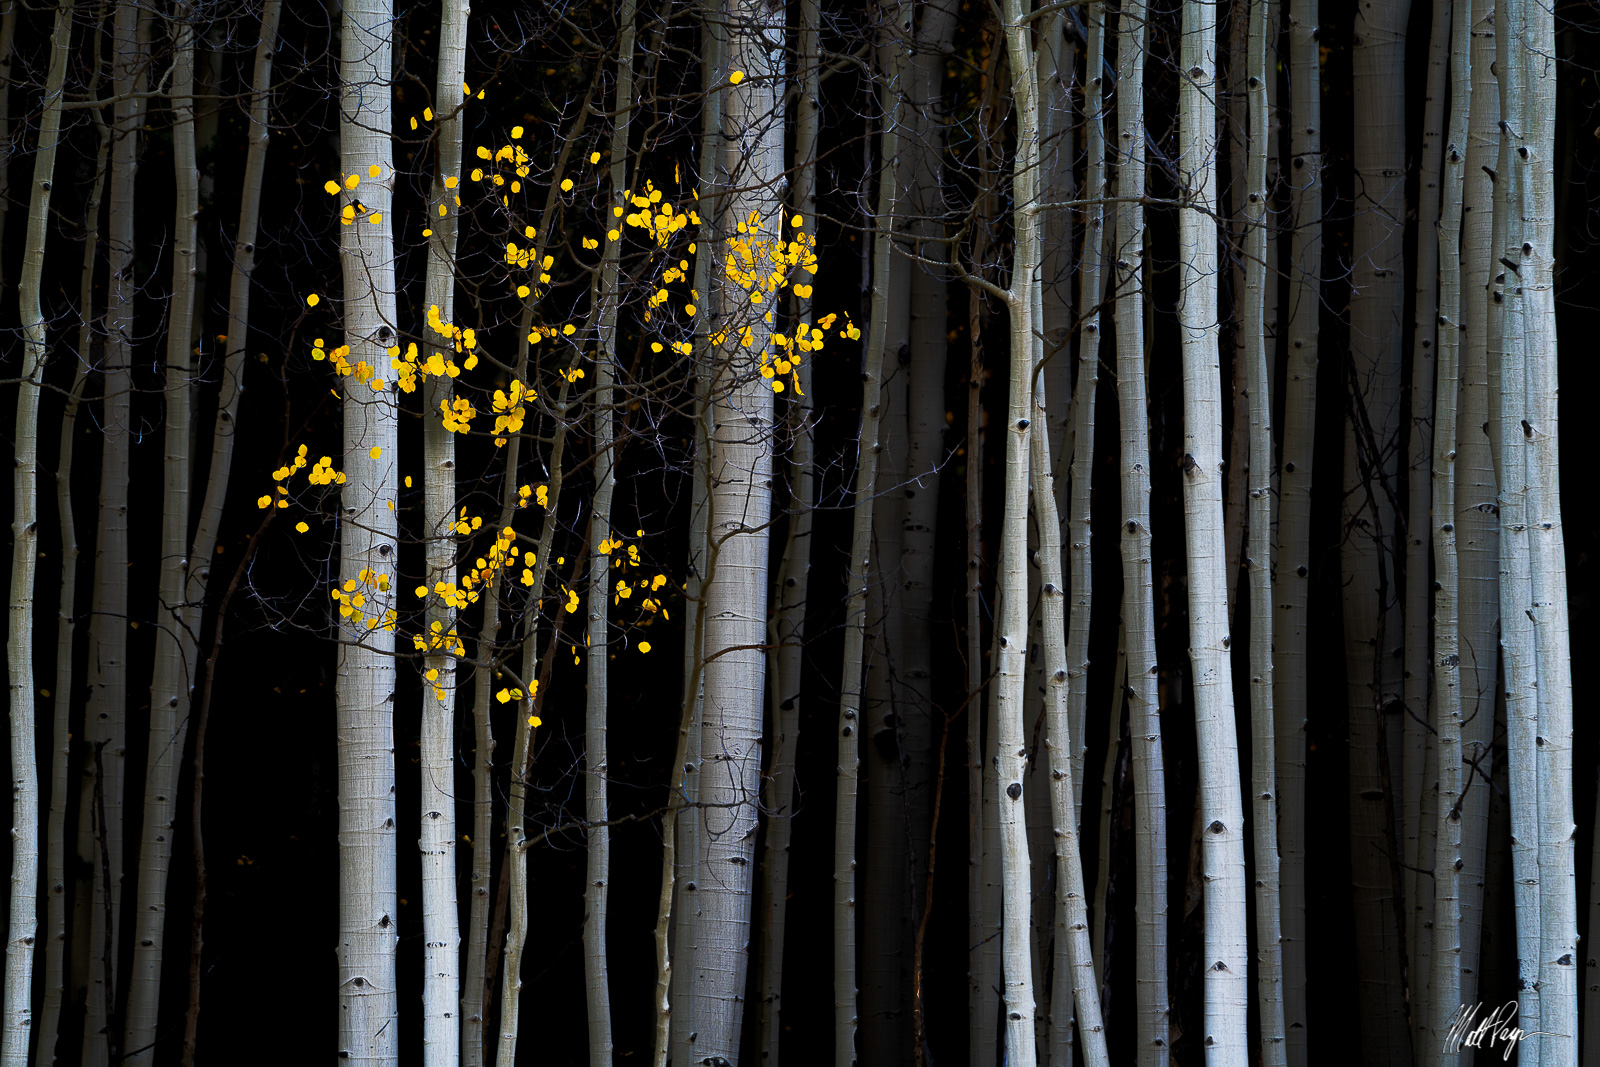 Early Light catches the white bark of aspen trees in a forest near Ridgway, Colorado. I just loved how only a few trees had yellow...